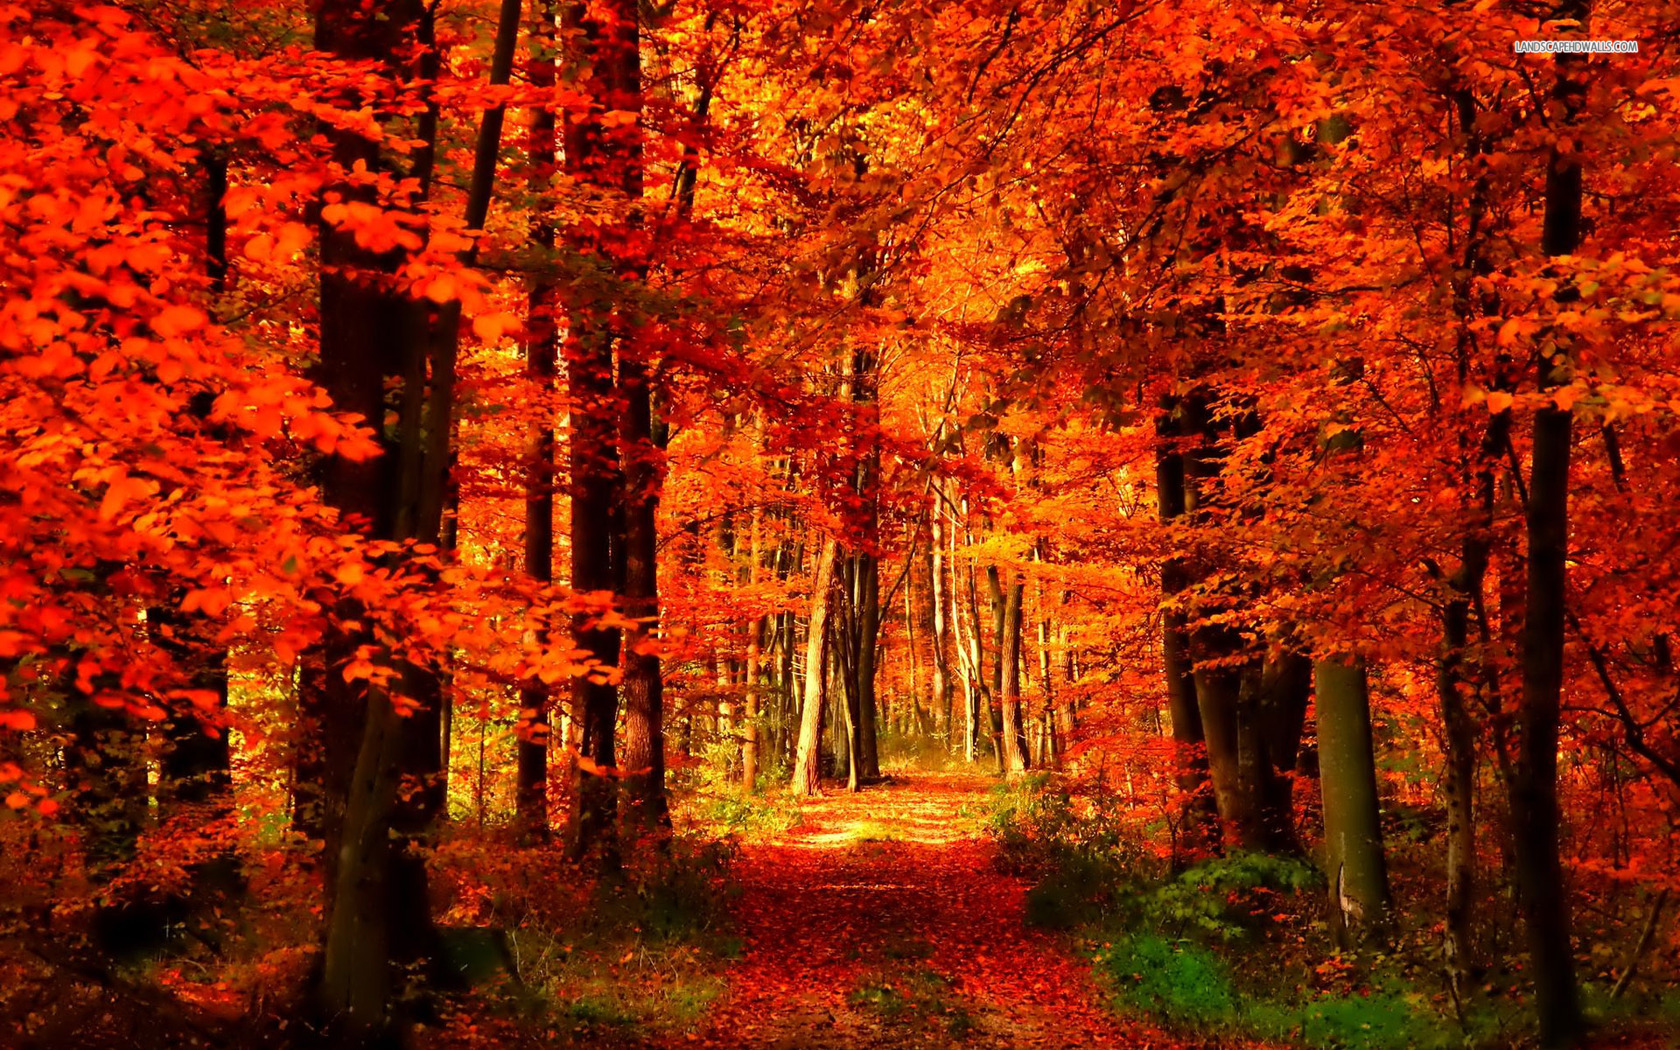 orange-and-red-autumn-forest